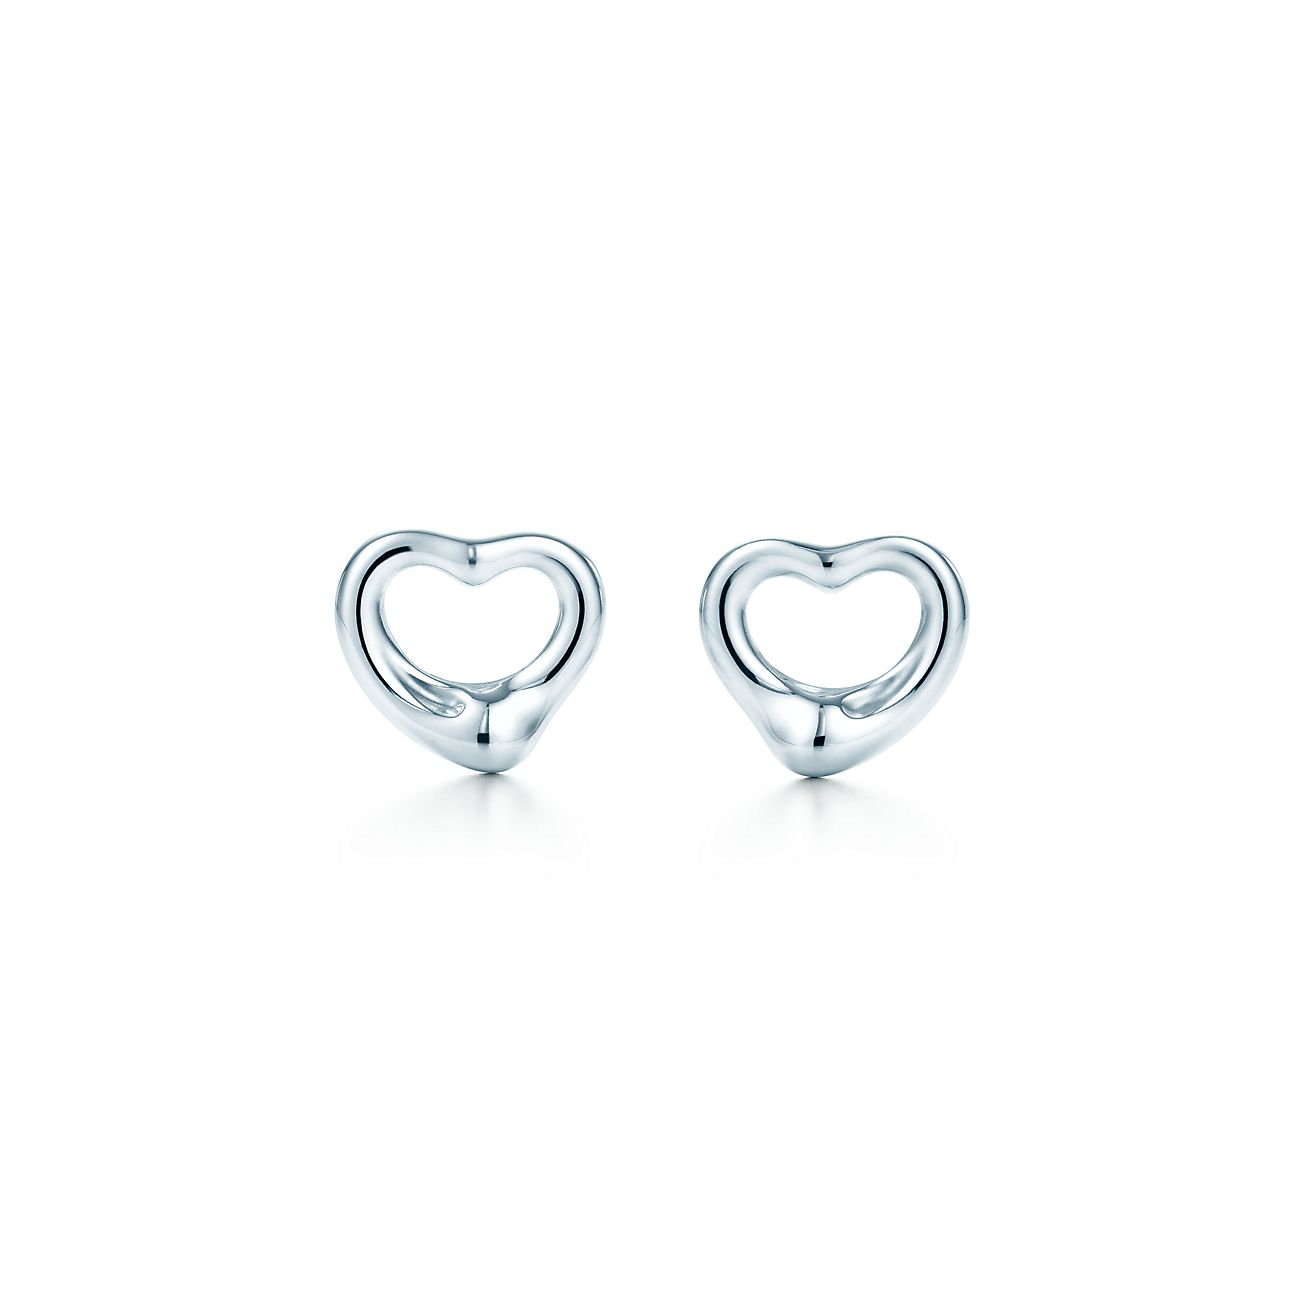 Jewelry Earrings Elsa Peretti Open Heart Earrings 12270062 Tiffany Earrings Heart